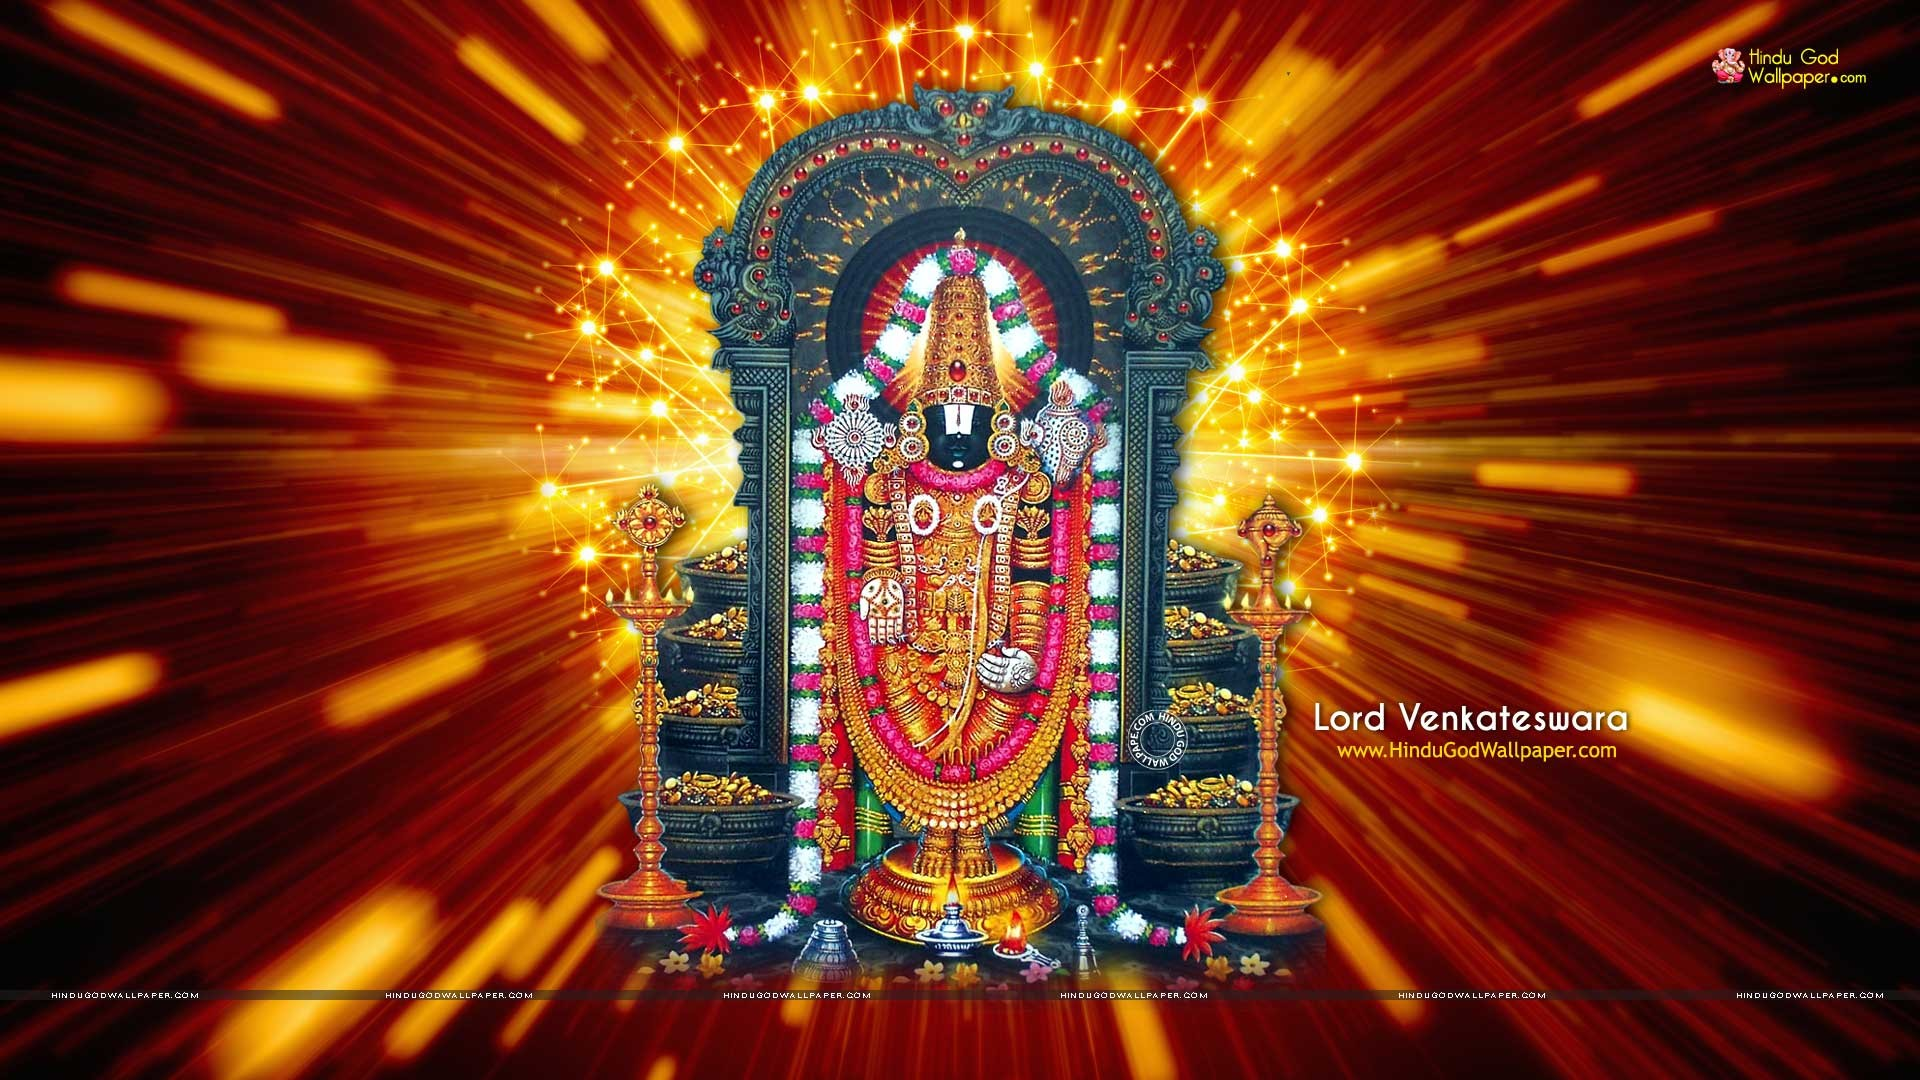 Venkateswara Swami Photos 4k For Pc: Hindu God HD Wallpapers 1080p (68+ Images